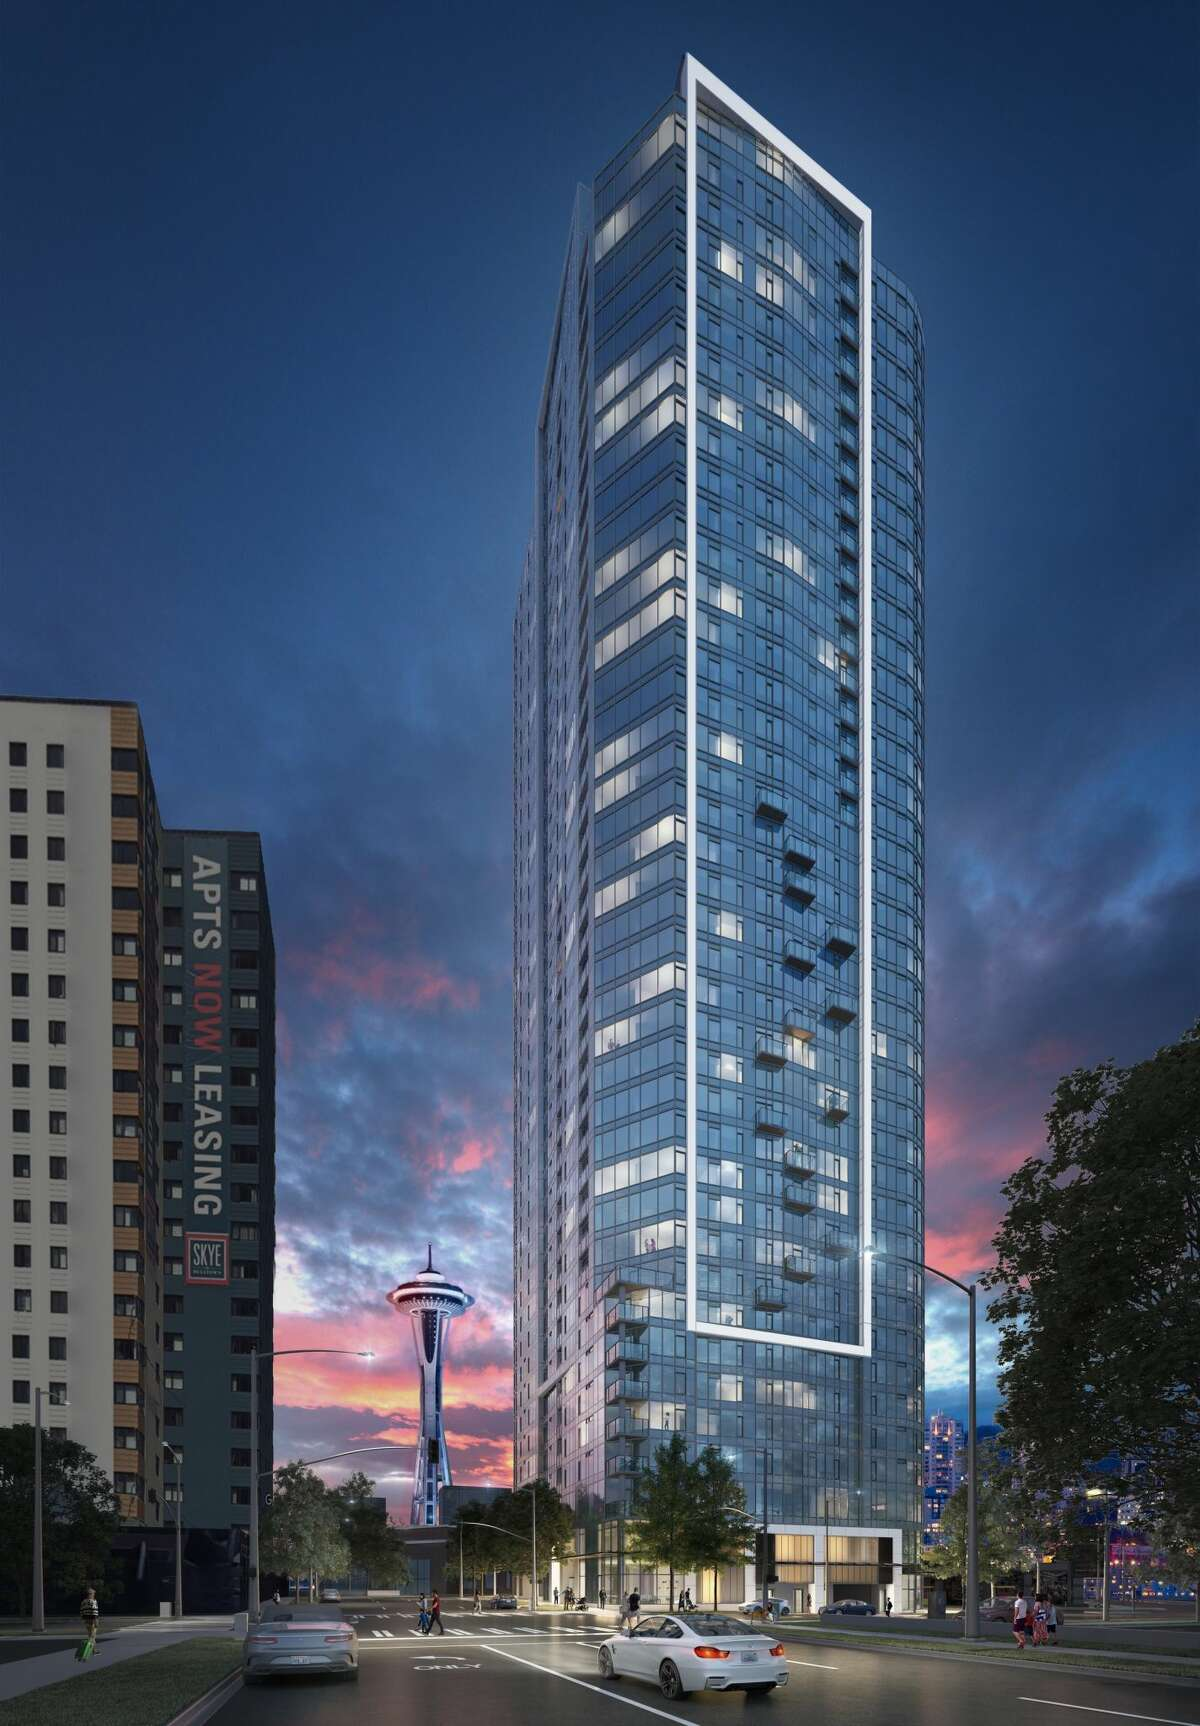 The Spire Tower, which stands resplendent in Seattle's downtown, has reduced prices to lure buyers - and it's working.